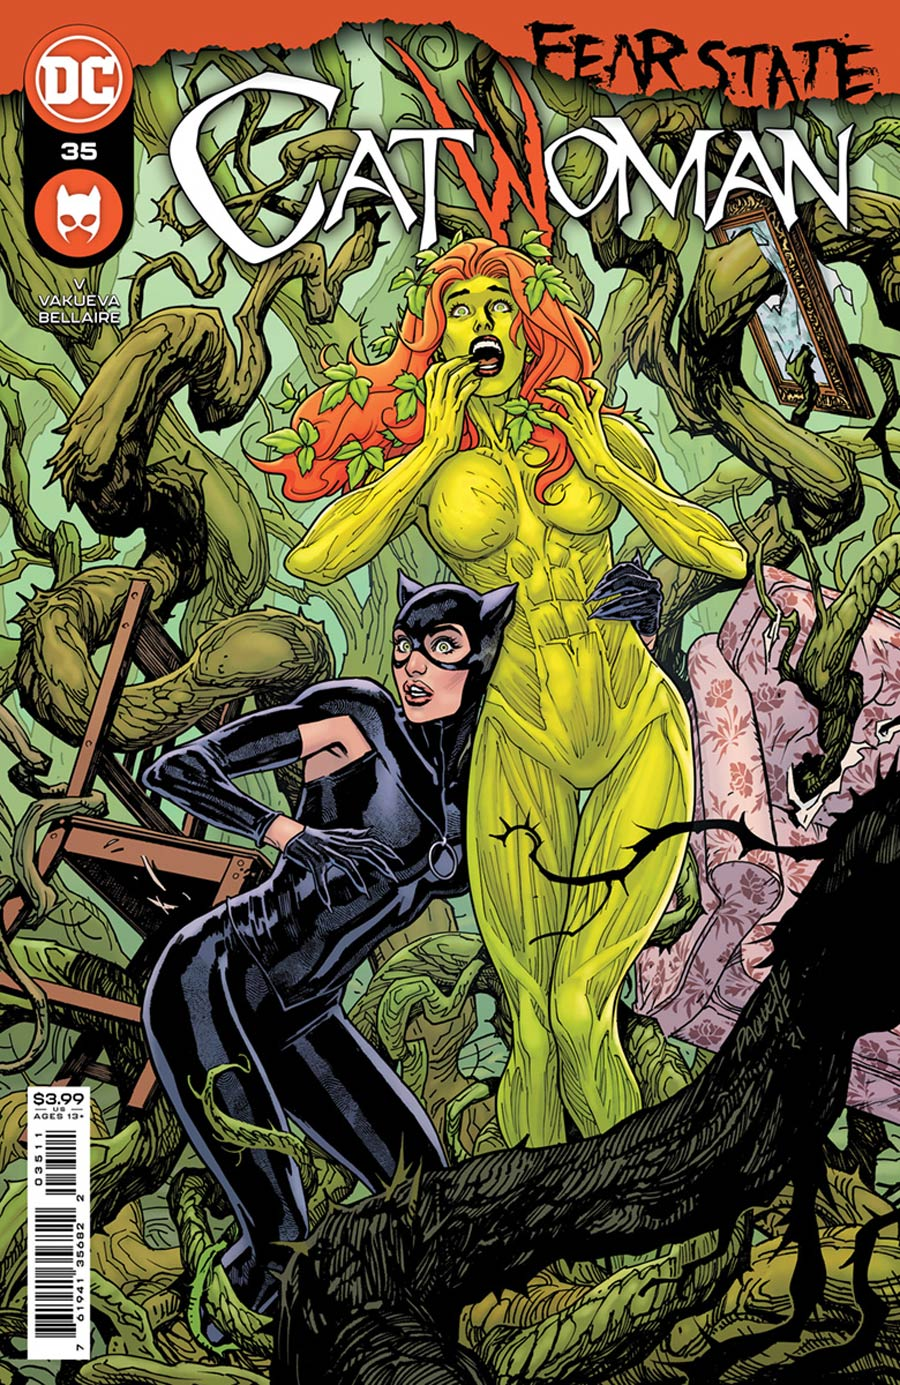 Catwoman Vol 5 #35 Cover A Regular Yanick Paquette Cover (Fear State Tie-In)